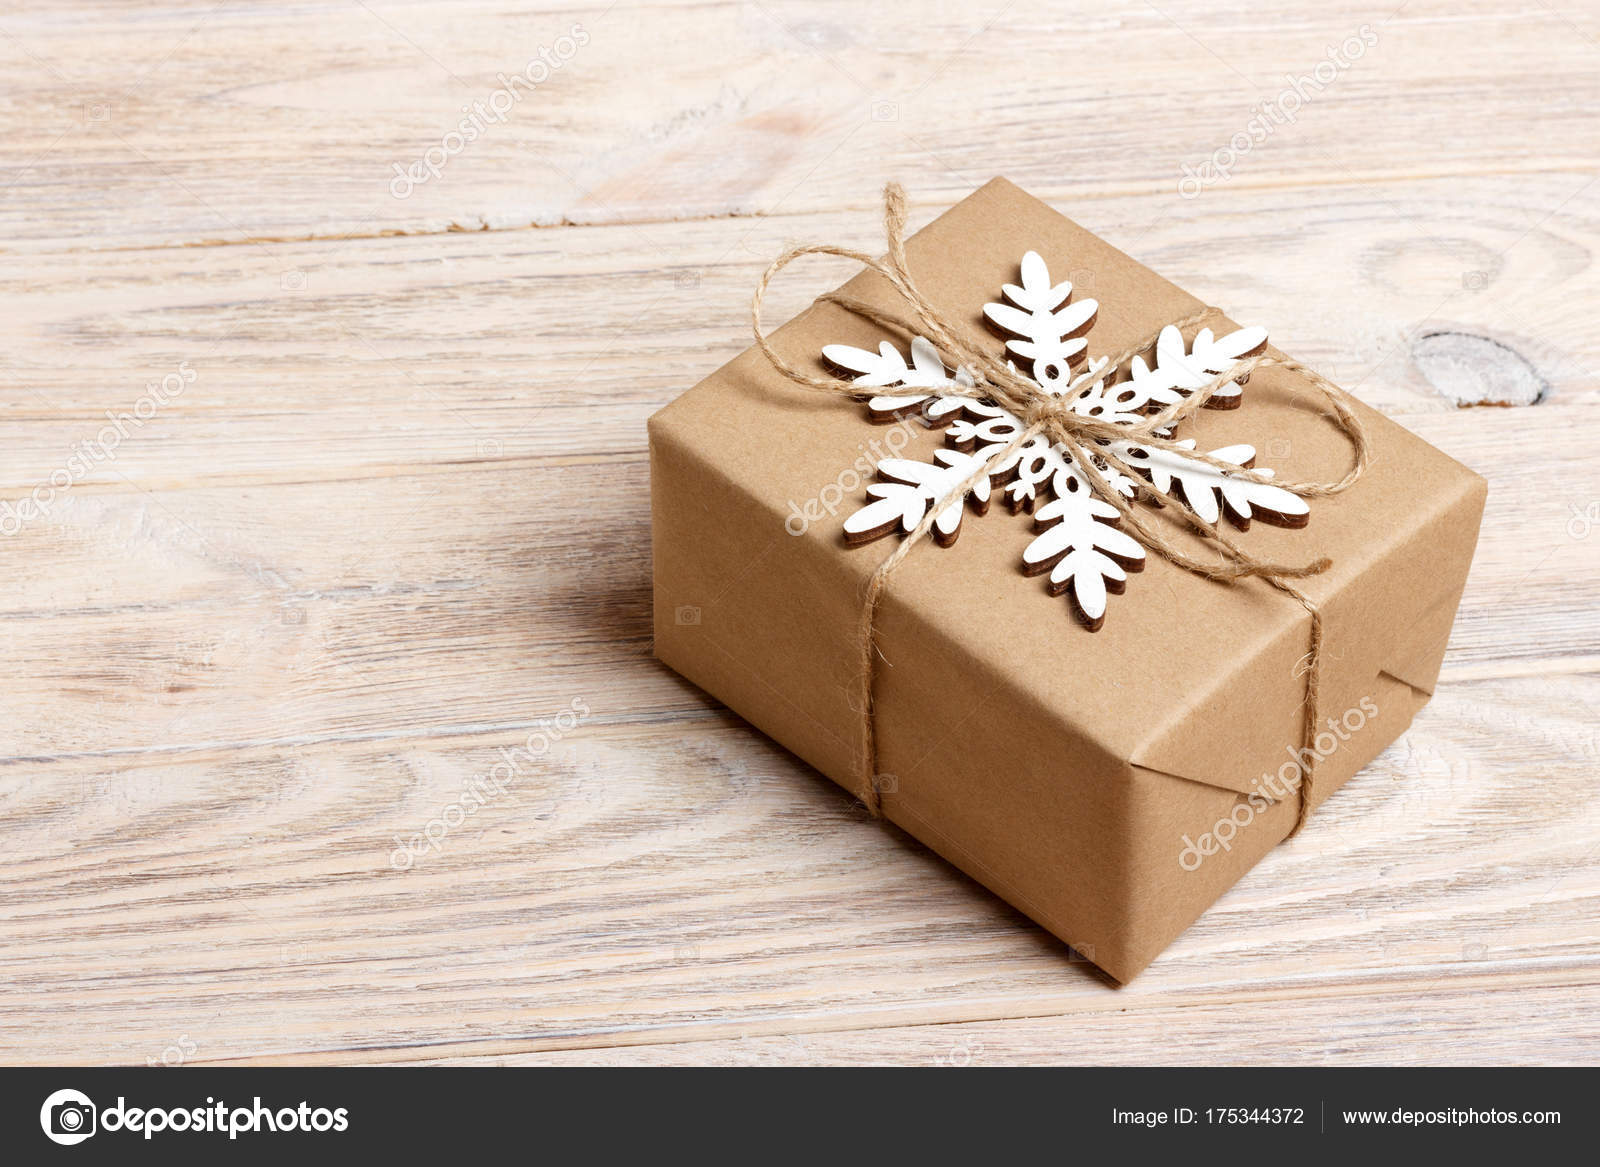 Christmas Handmade Gift Box Decorated With Craft Paper And White Snowflake On Wooden Background Top